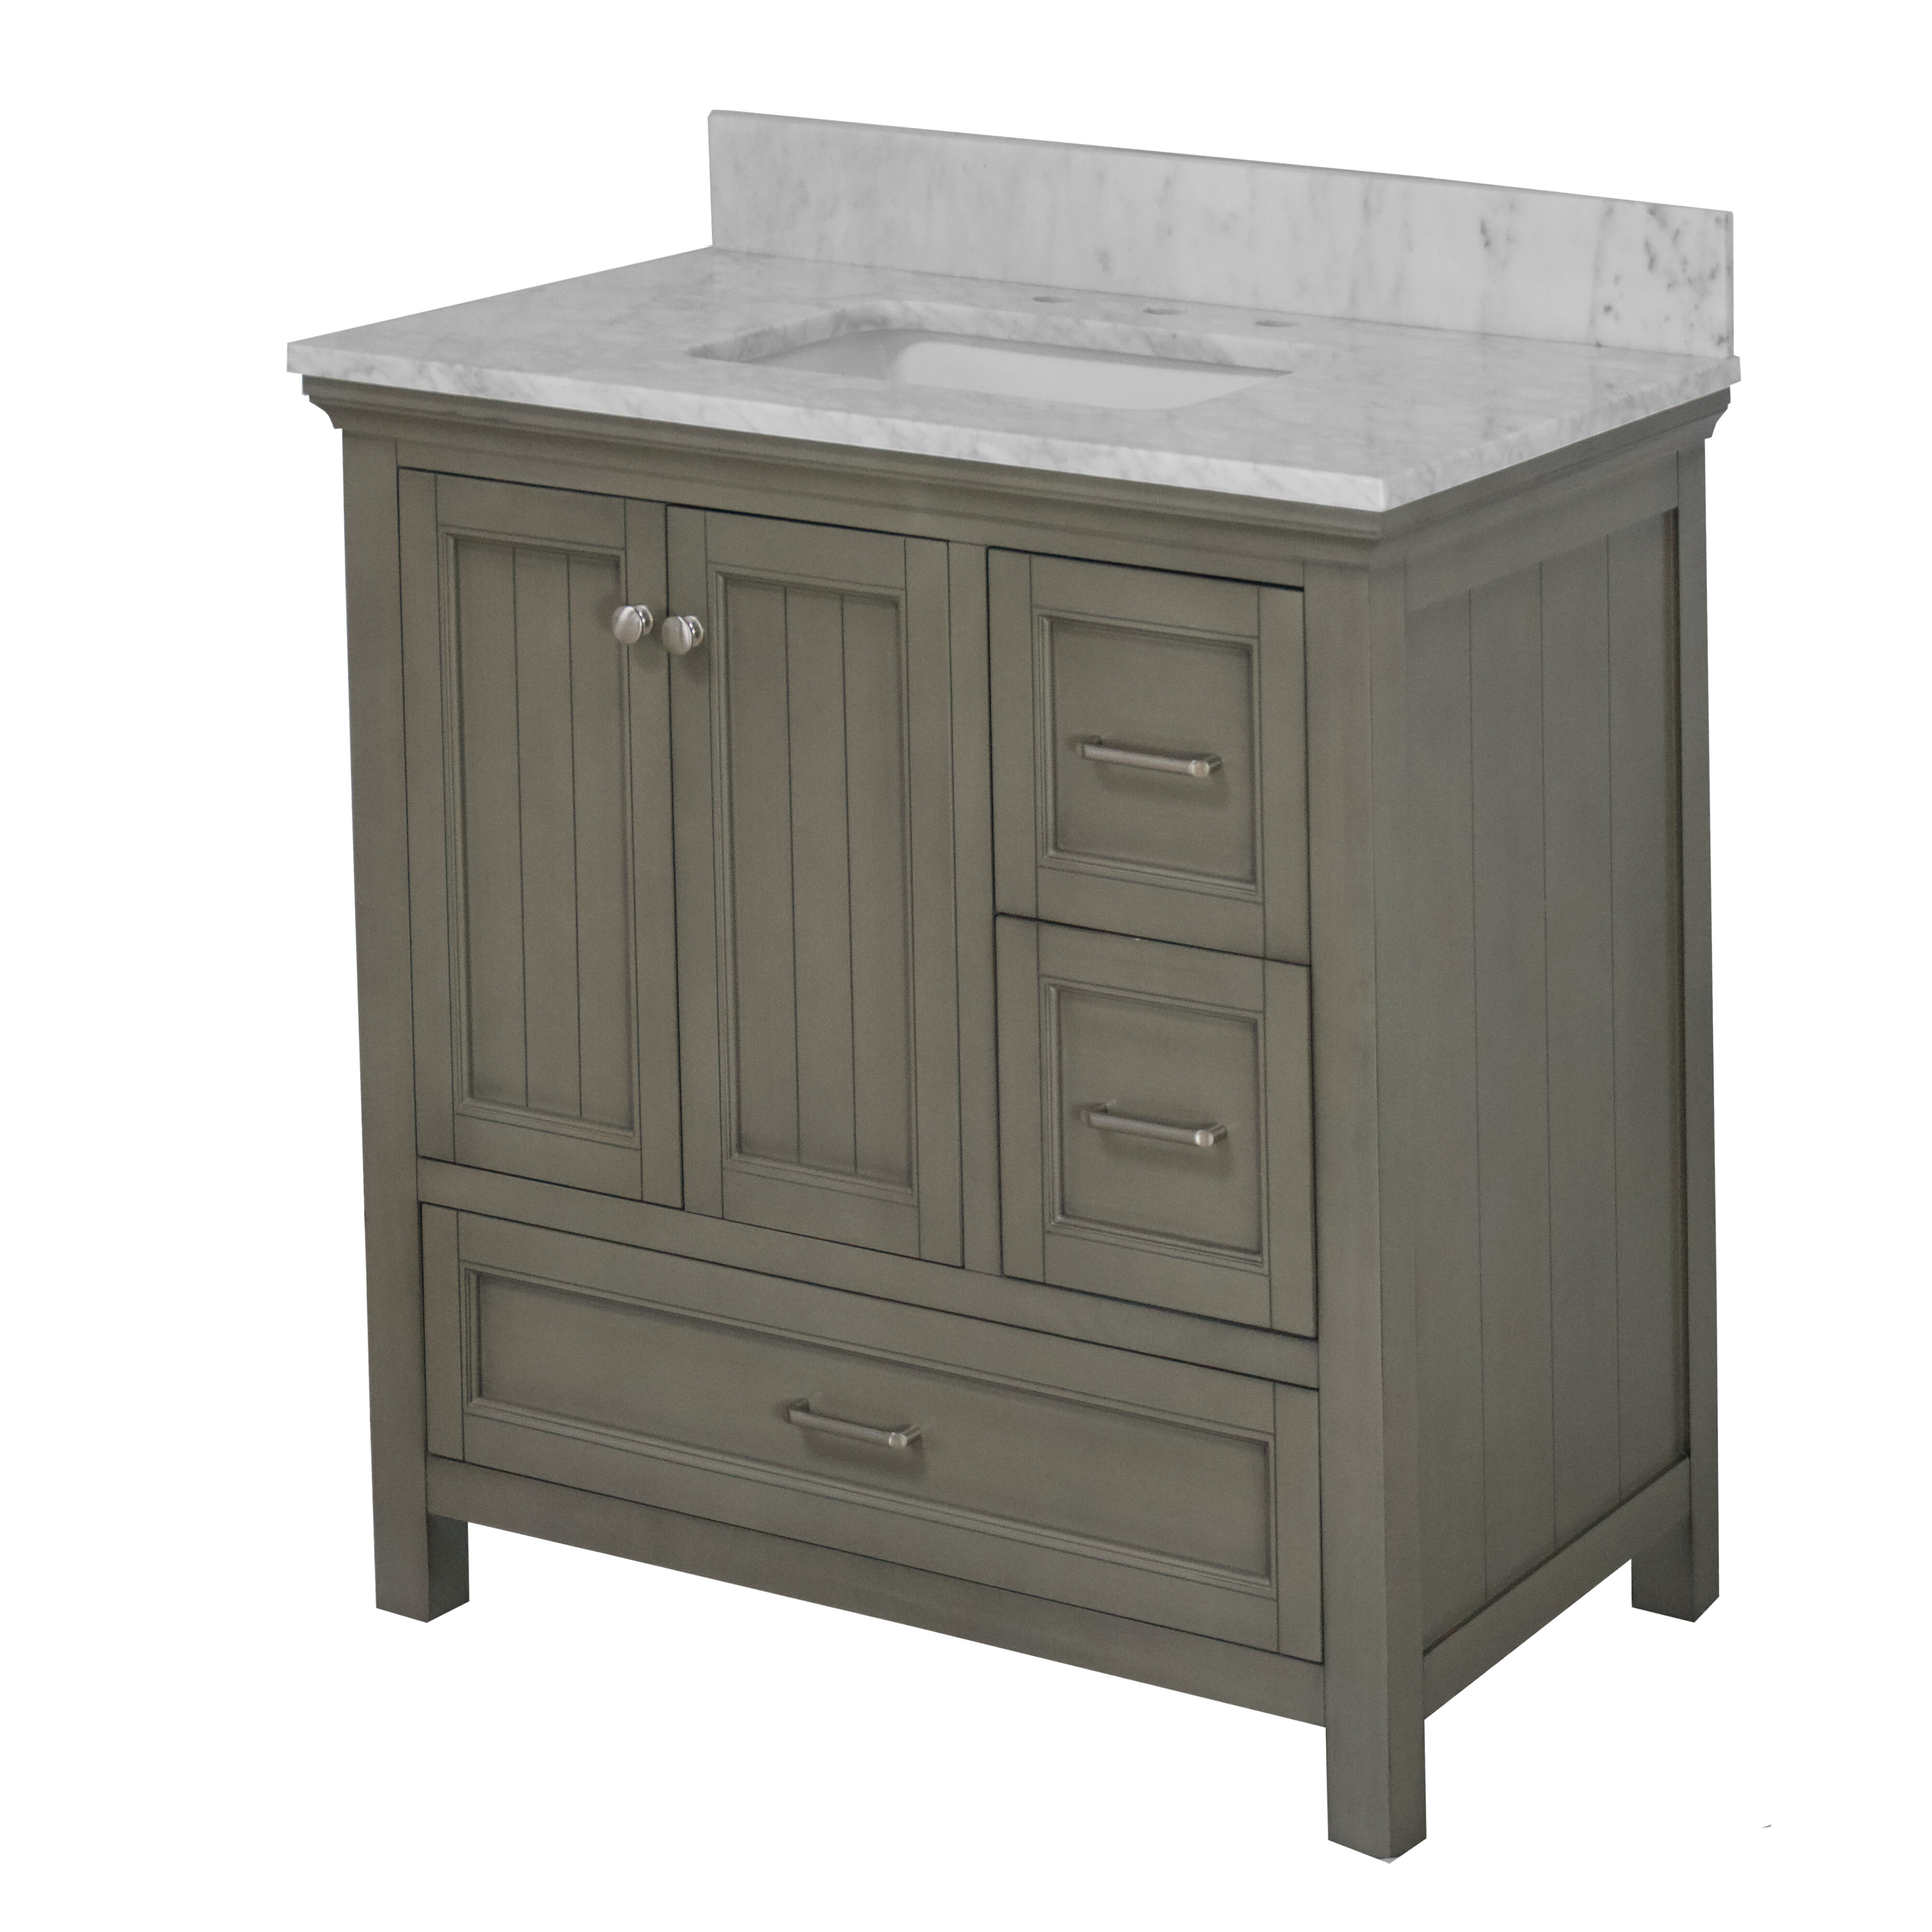 Joss Main Kituku 36 Single Bathroom Vanity Set Reviews Wayfair